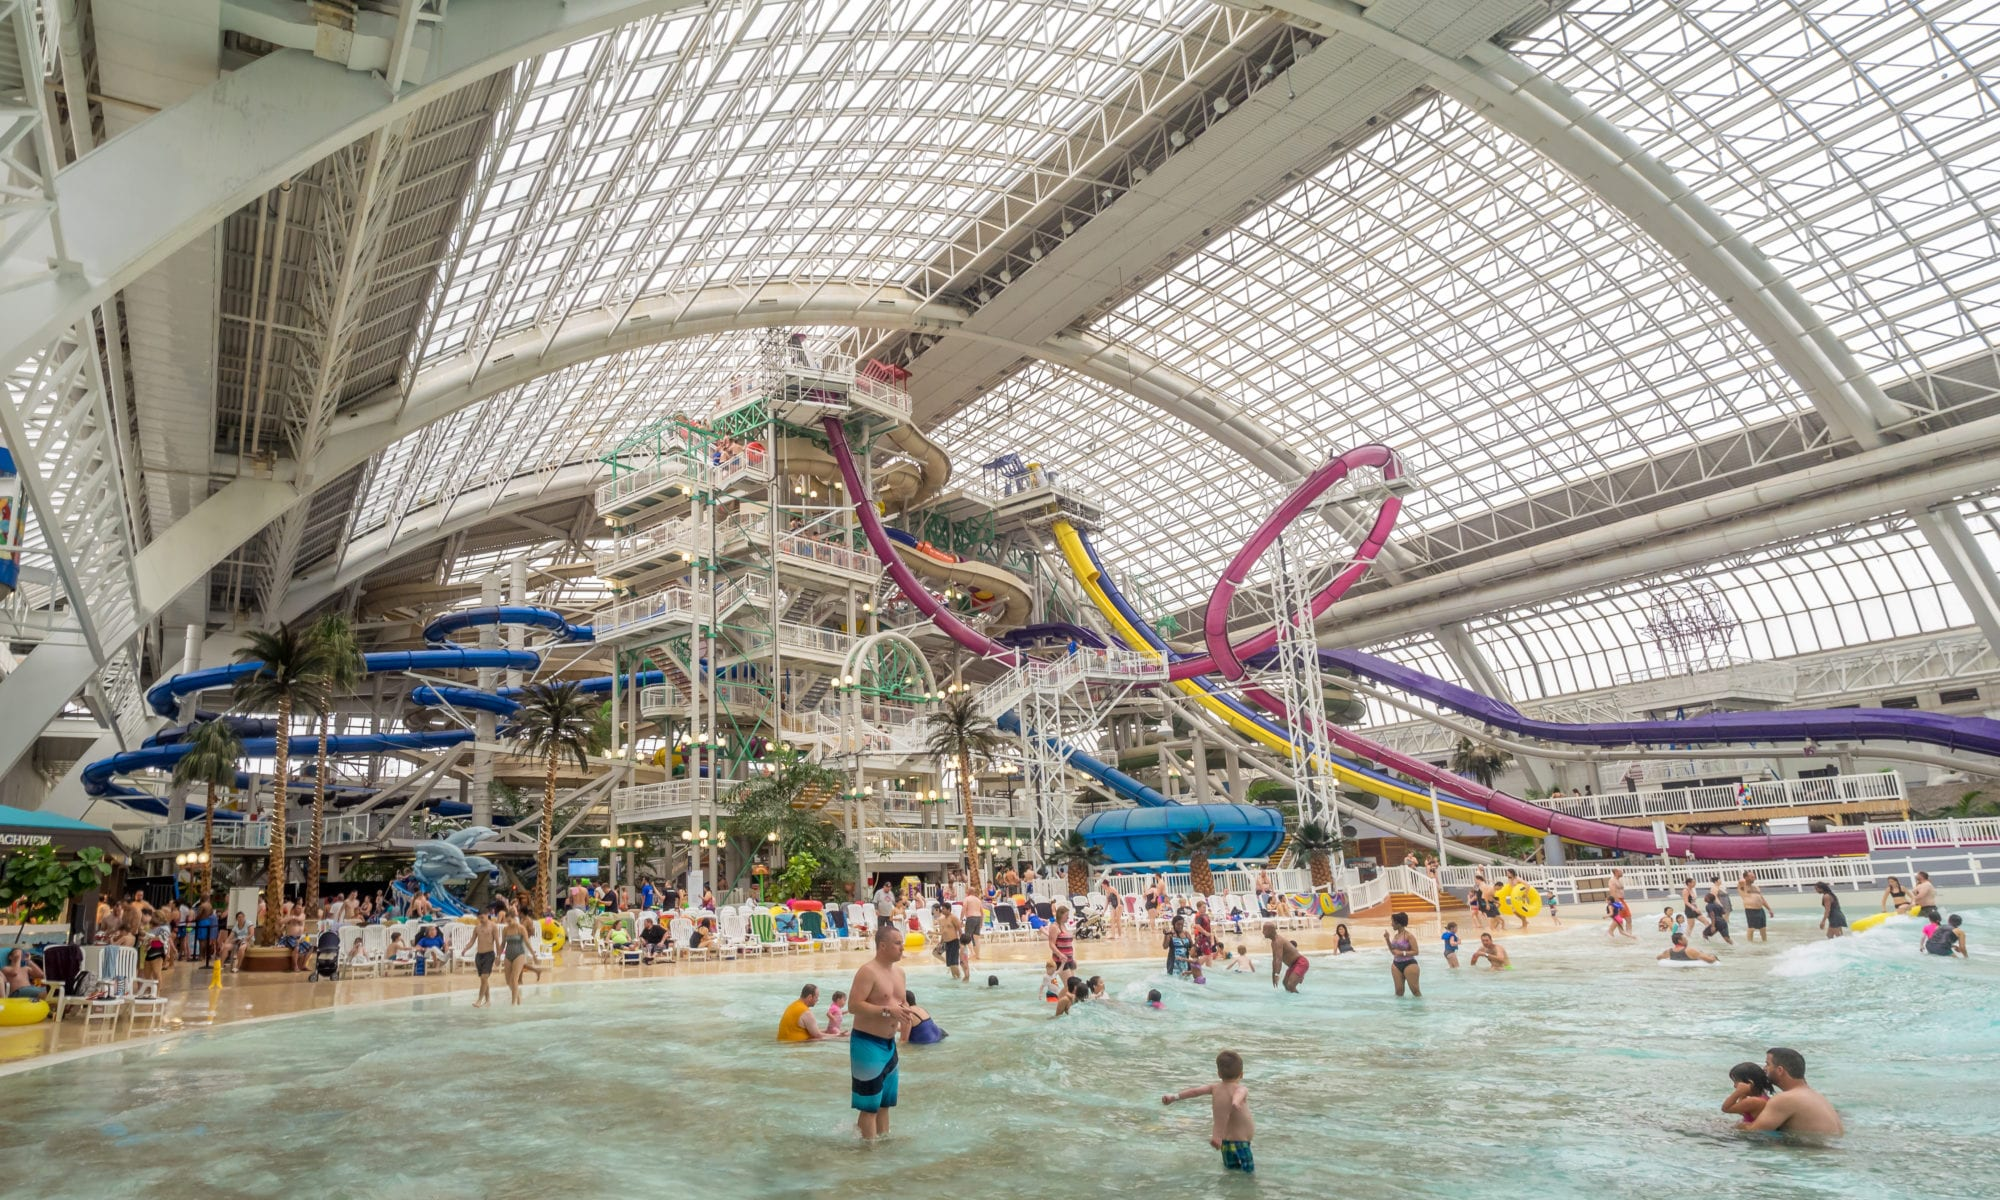 West Edmonton Mall 2018 wave pool